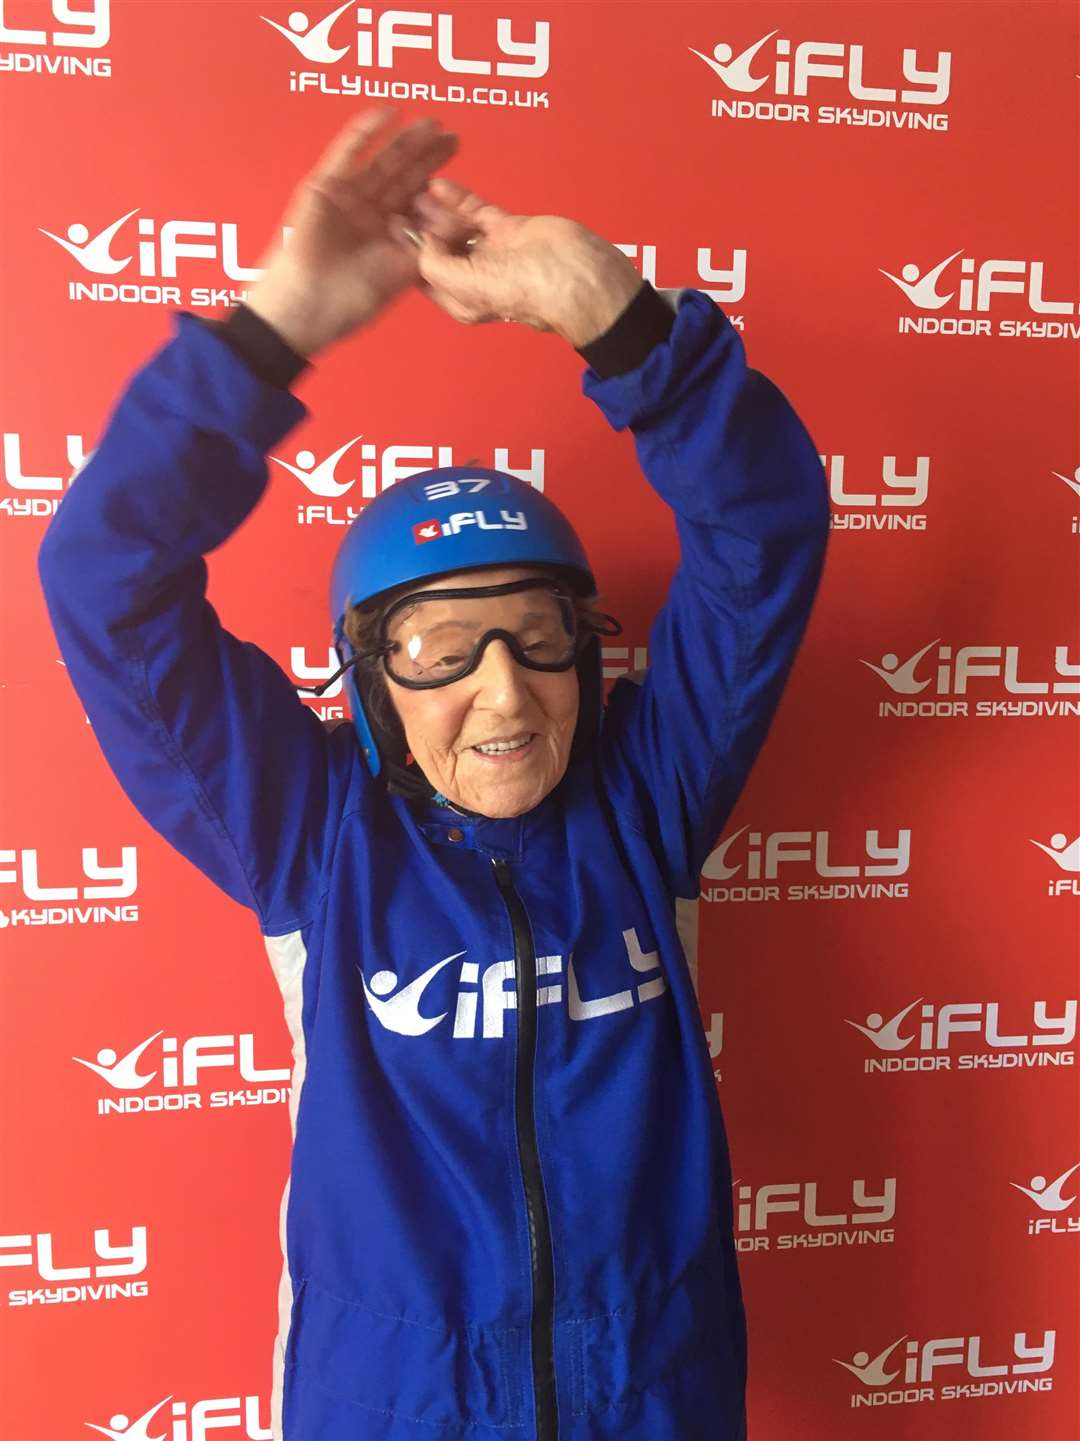 Joan Phillips celebrates 99th birthday with indoor skydive (4529341)